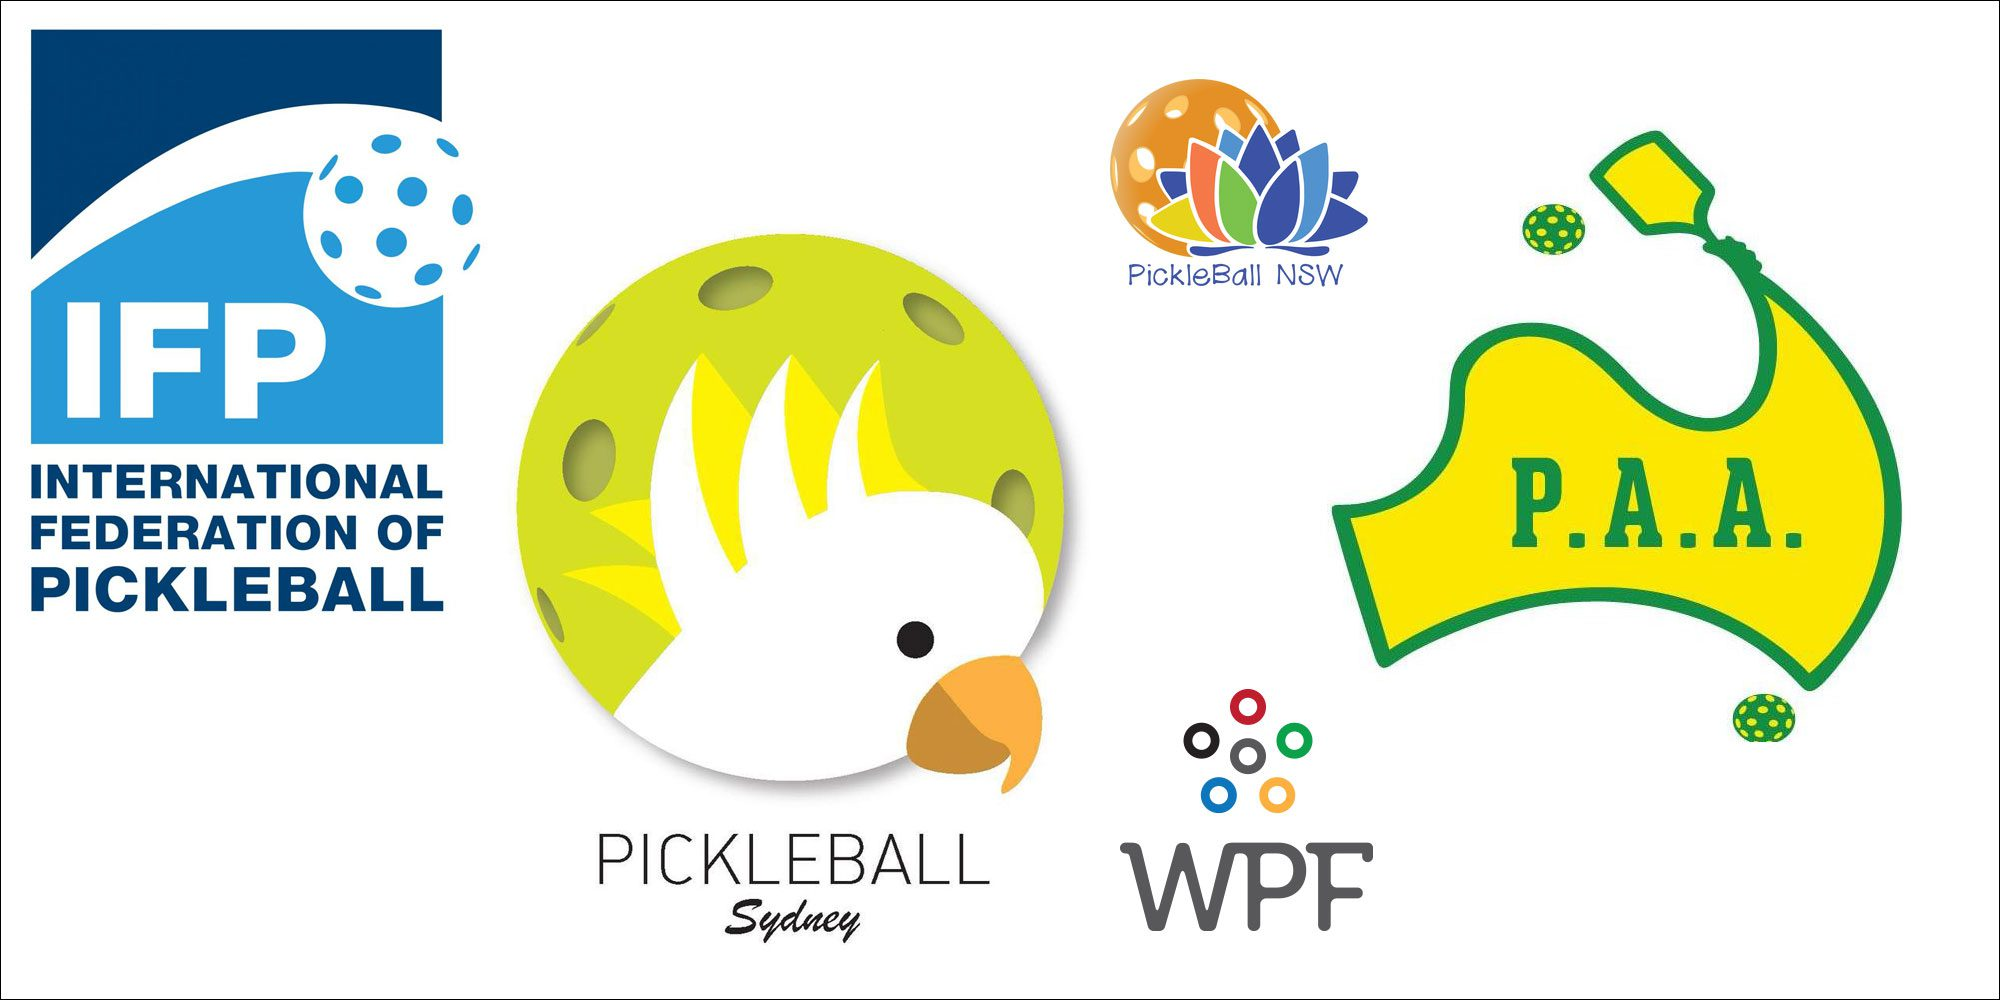 Logos of Pickleball NSW (PANSW), Pickleball Australia (PAA), Pickleball Sydney, International Federation of Pickleball (IFP) and World Pickleball Federation (WPF).